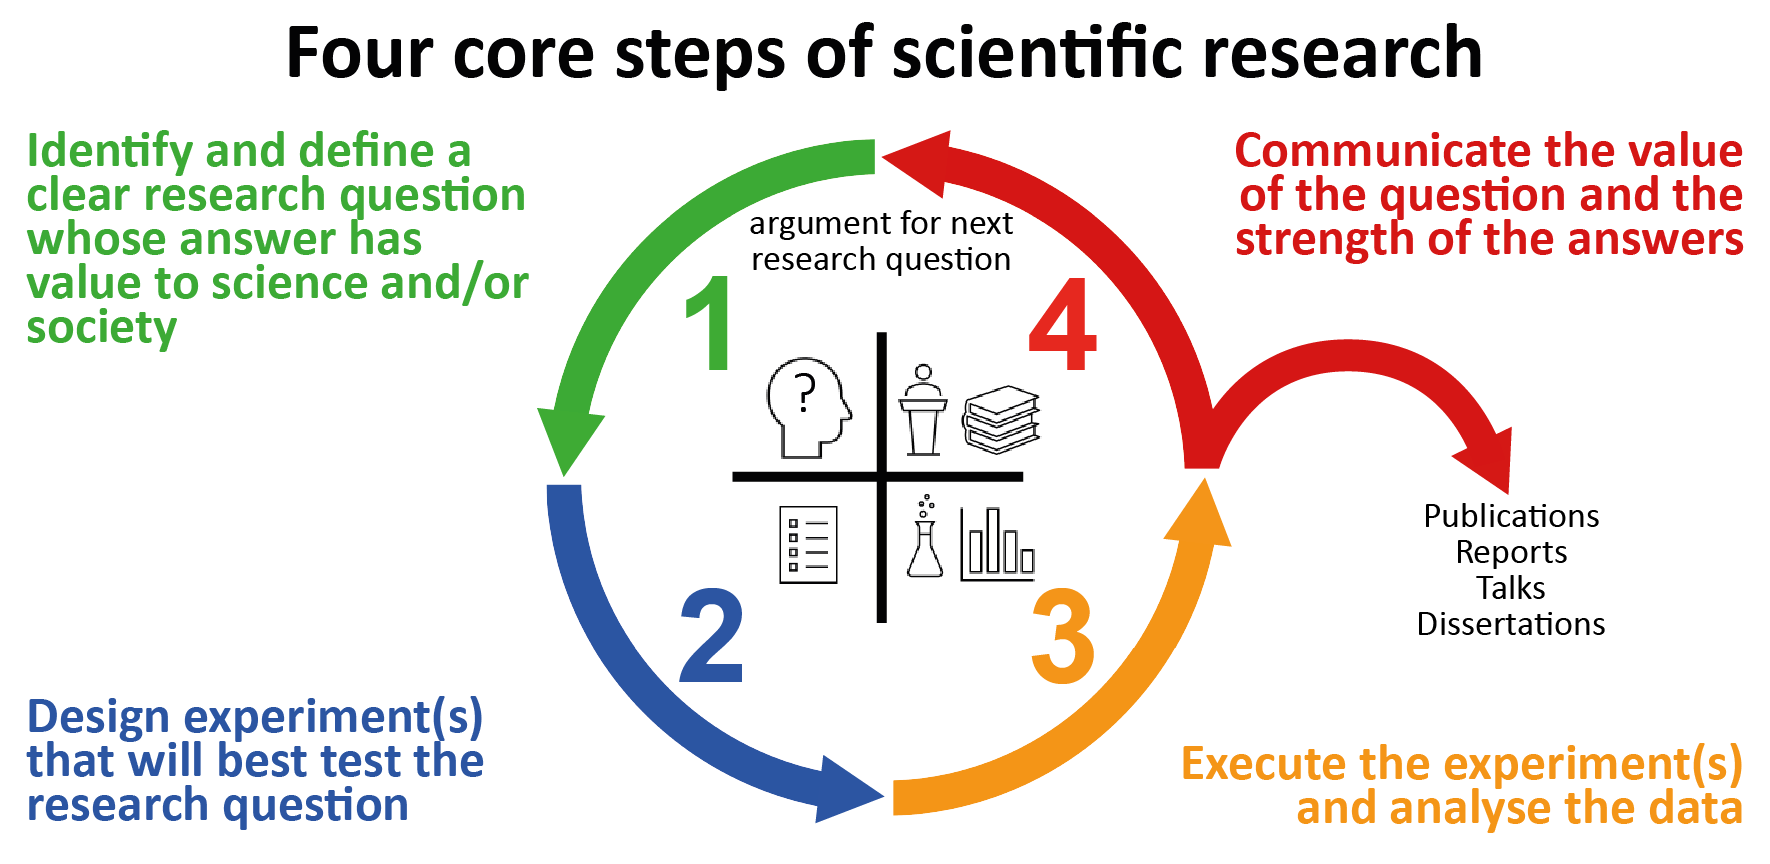 Four core steps of scientific research.